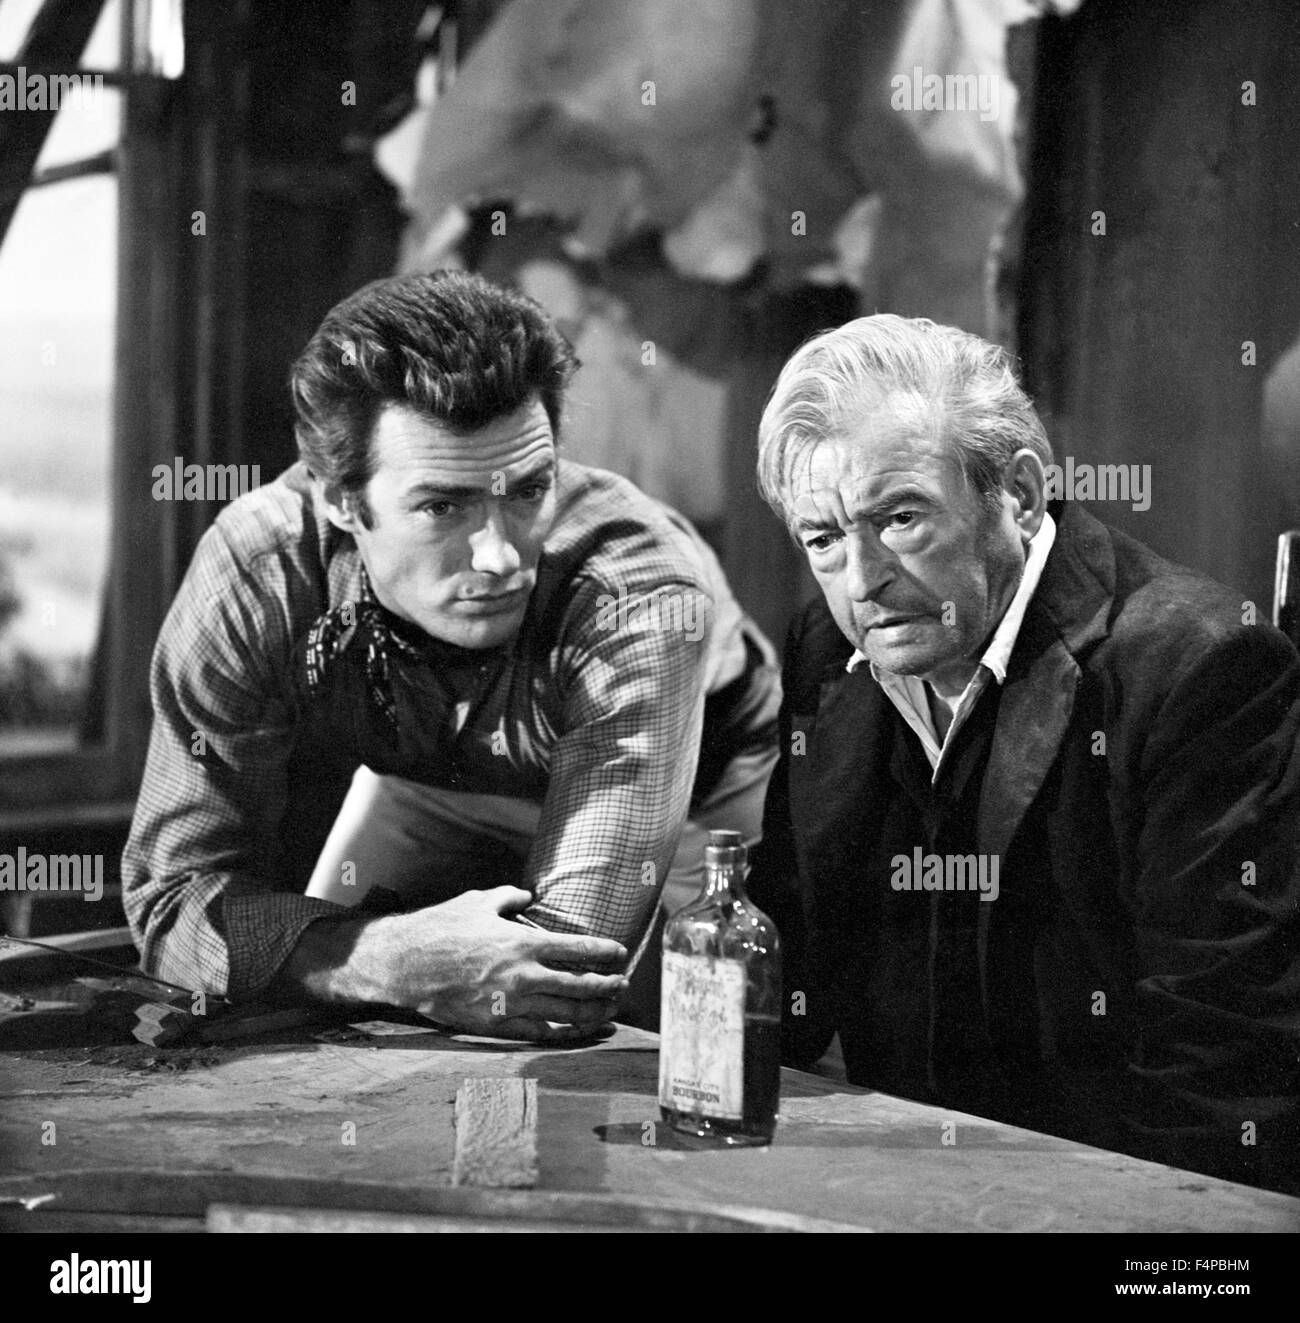 Clint Eastwood, Claude Rains / Rawhide T.V. 1959 - Stock Image